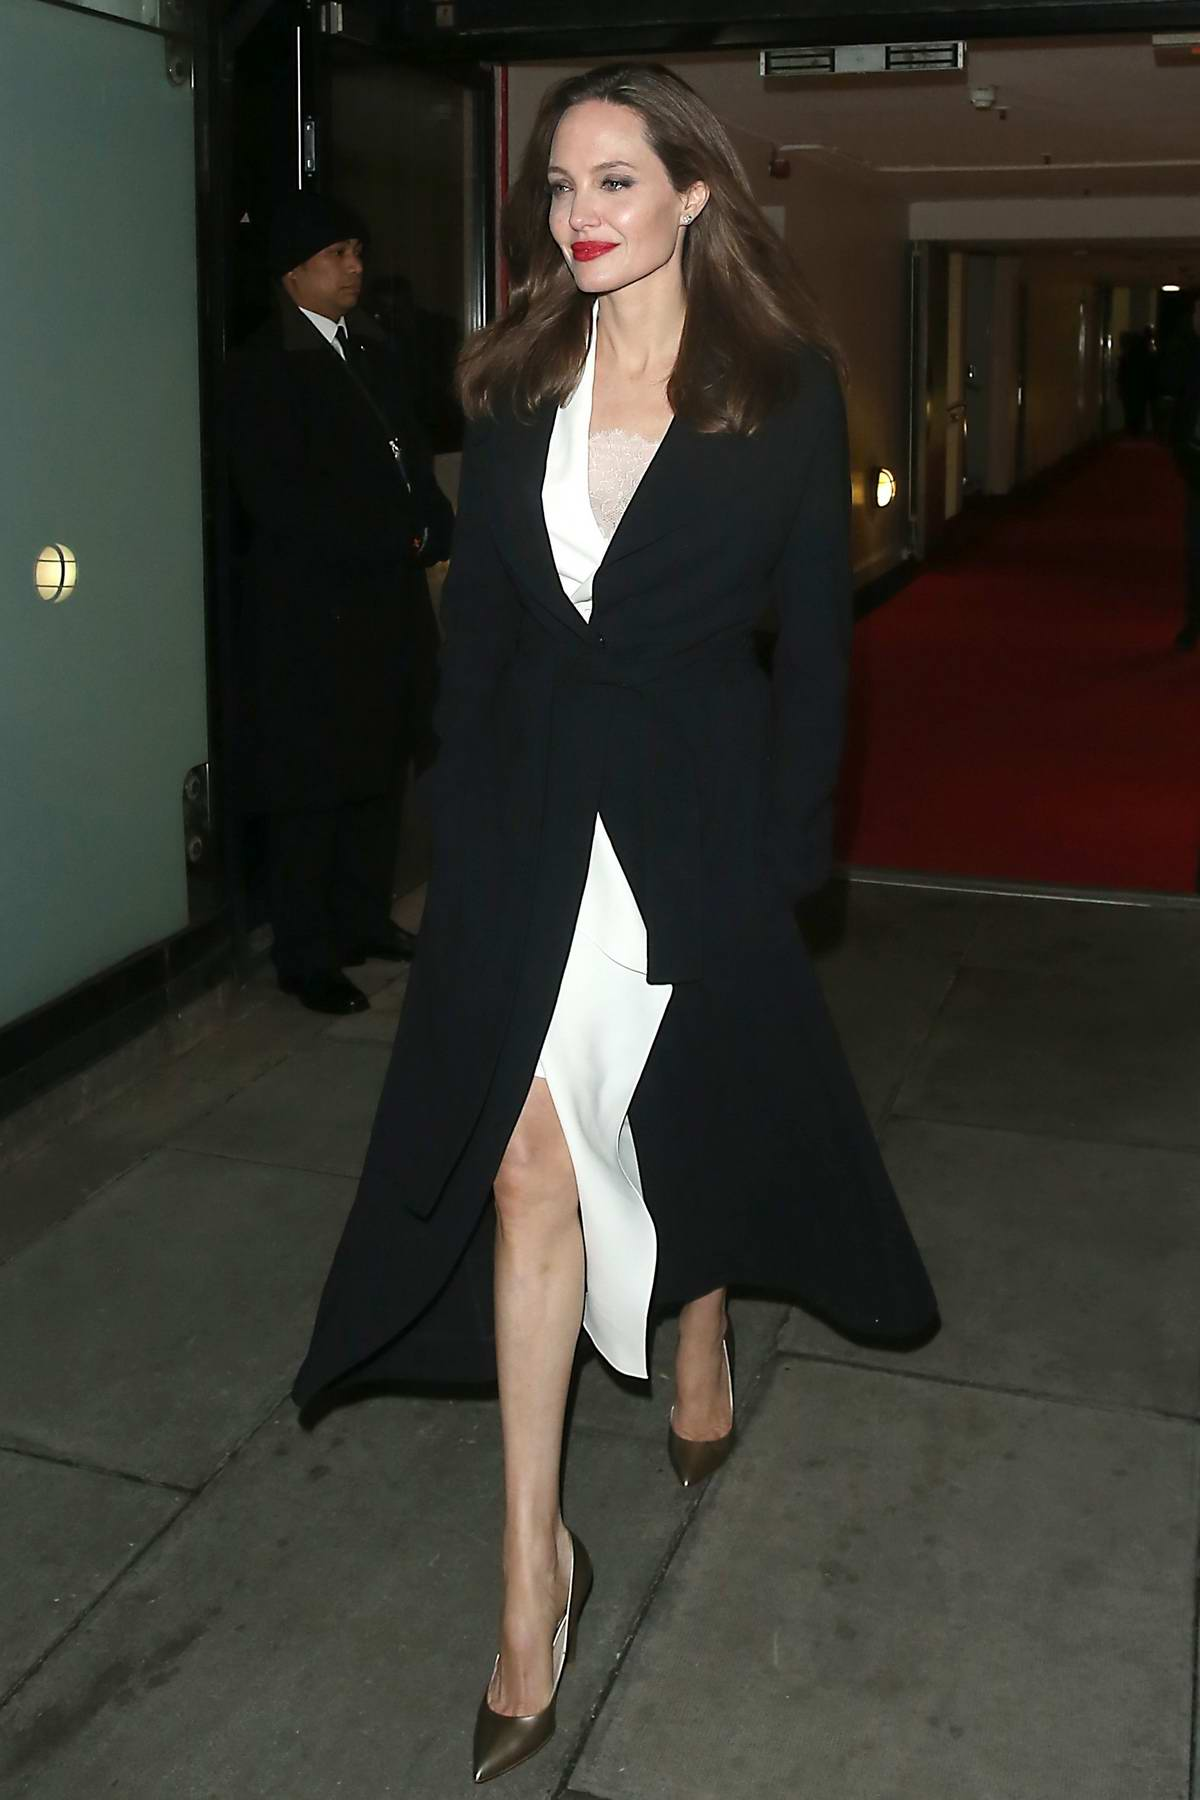 Angelina Jolie attends the launch of PSVI Film Festival at the BFI in London, UK